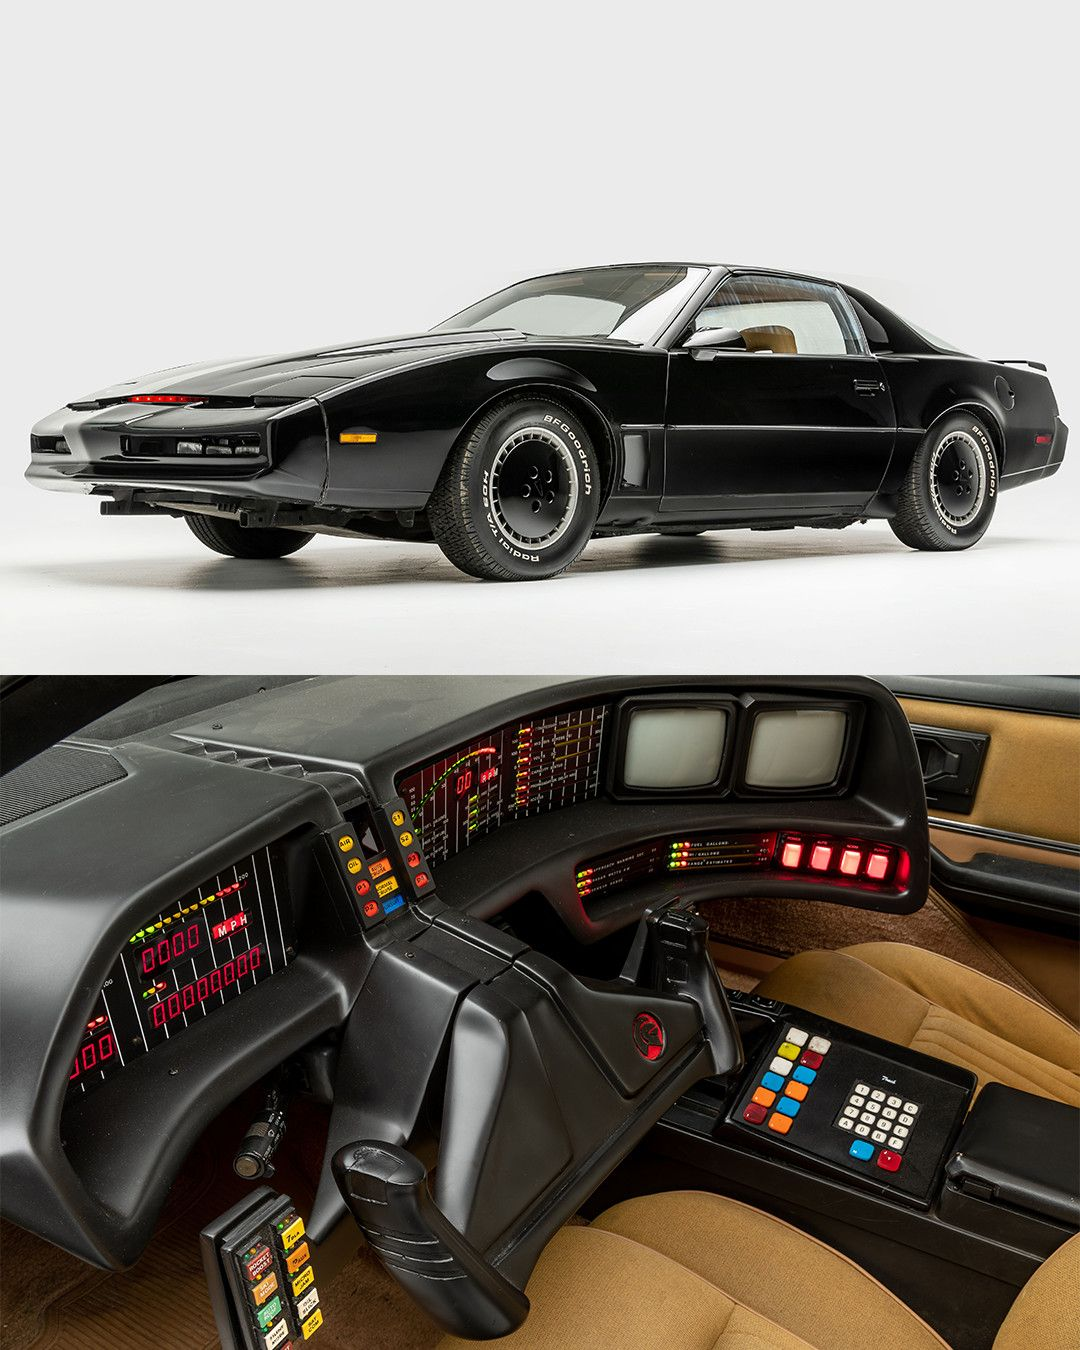 Knight Rider The Movie 2015 Knight Rider Rider Super Cars